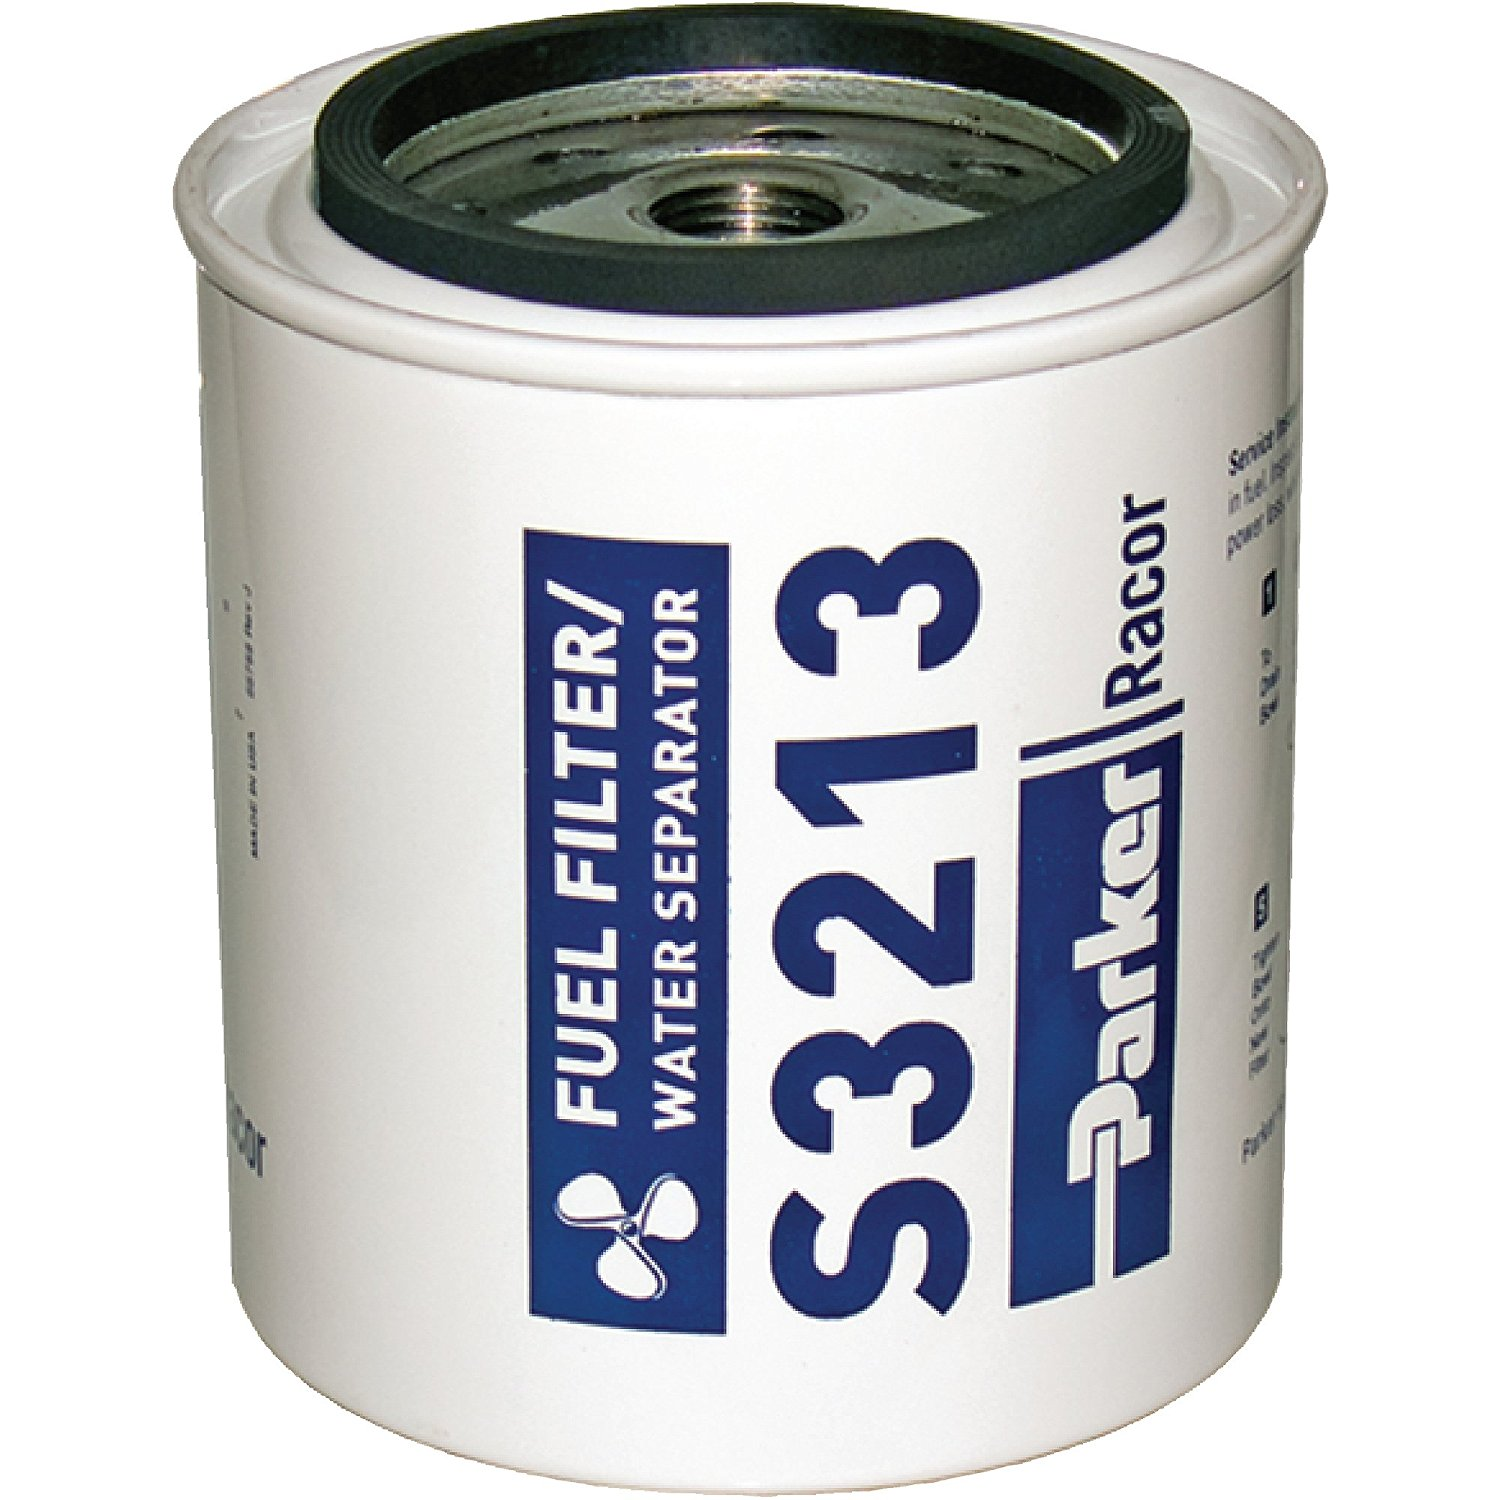 Cheap Racor 900 Fuel Filter Find Deals On Yamaha Outboard Get Quotations Replacement Element Fits Model B32013 Application